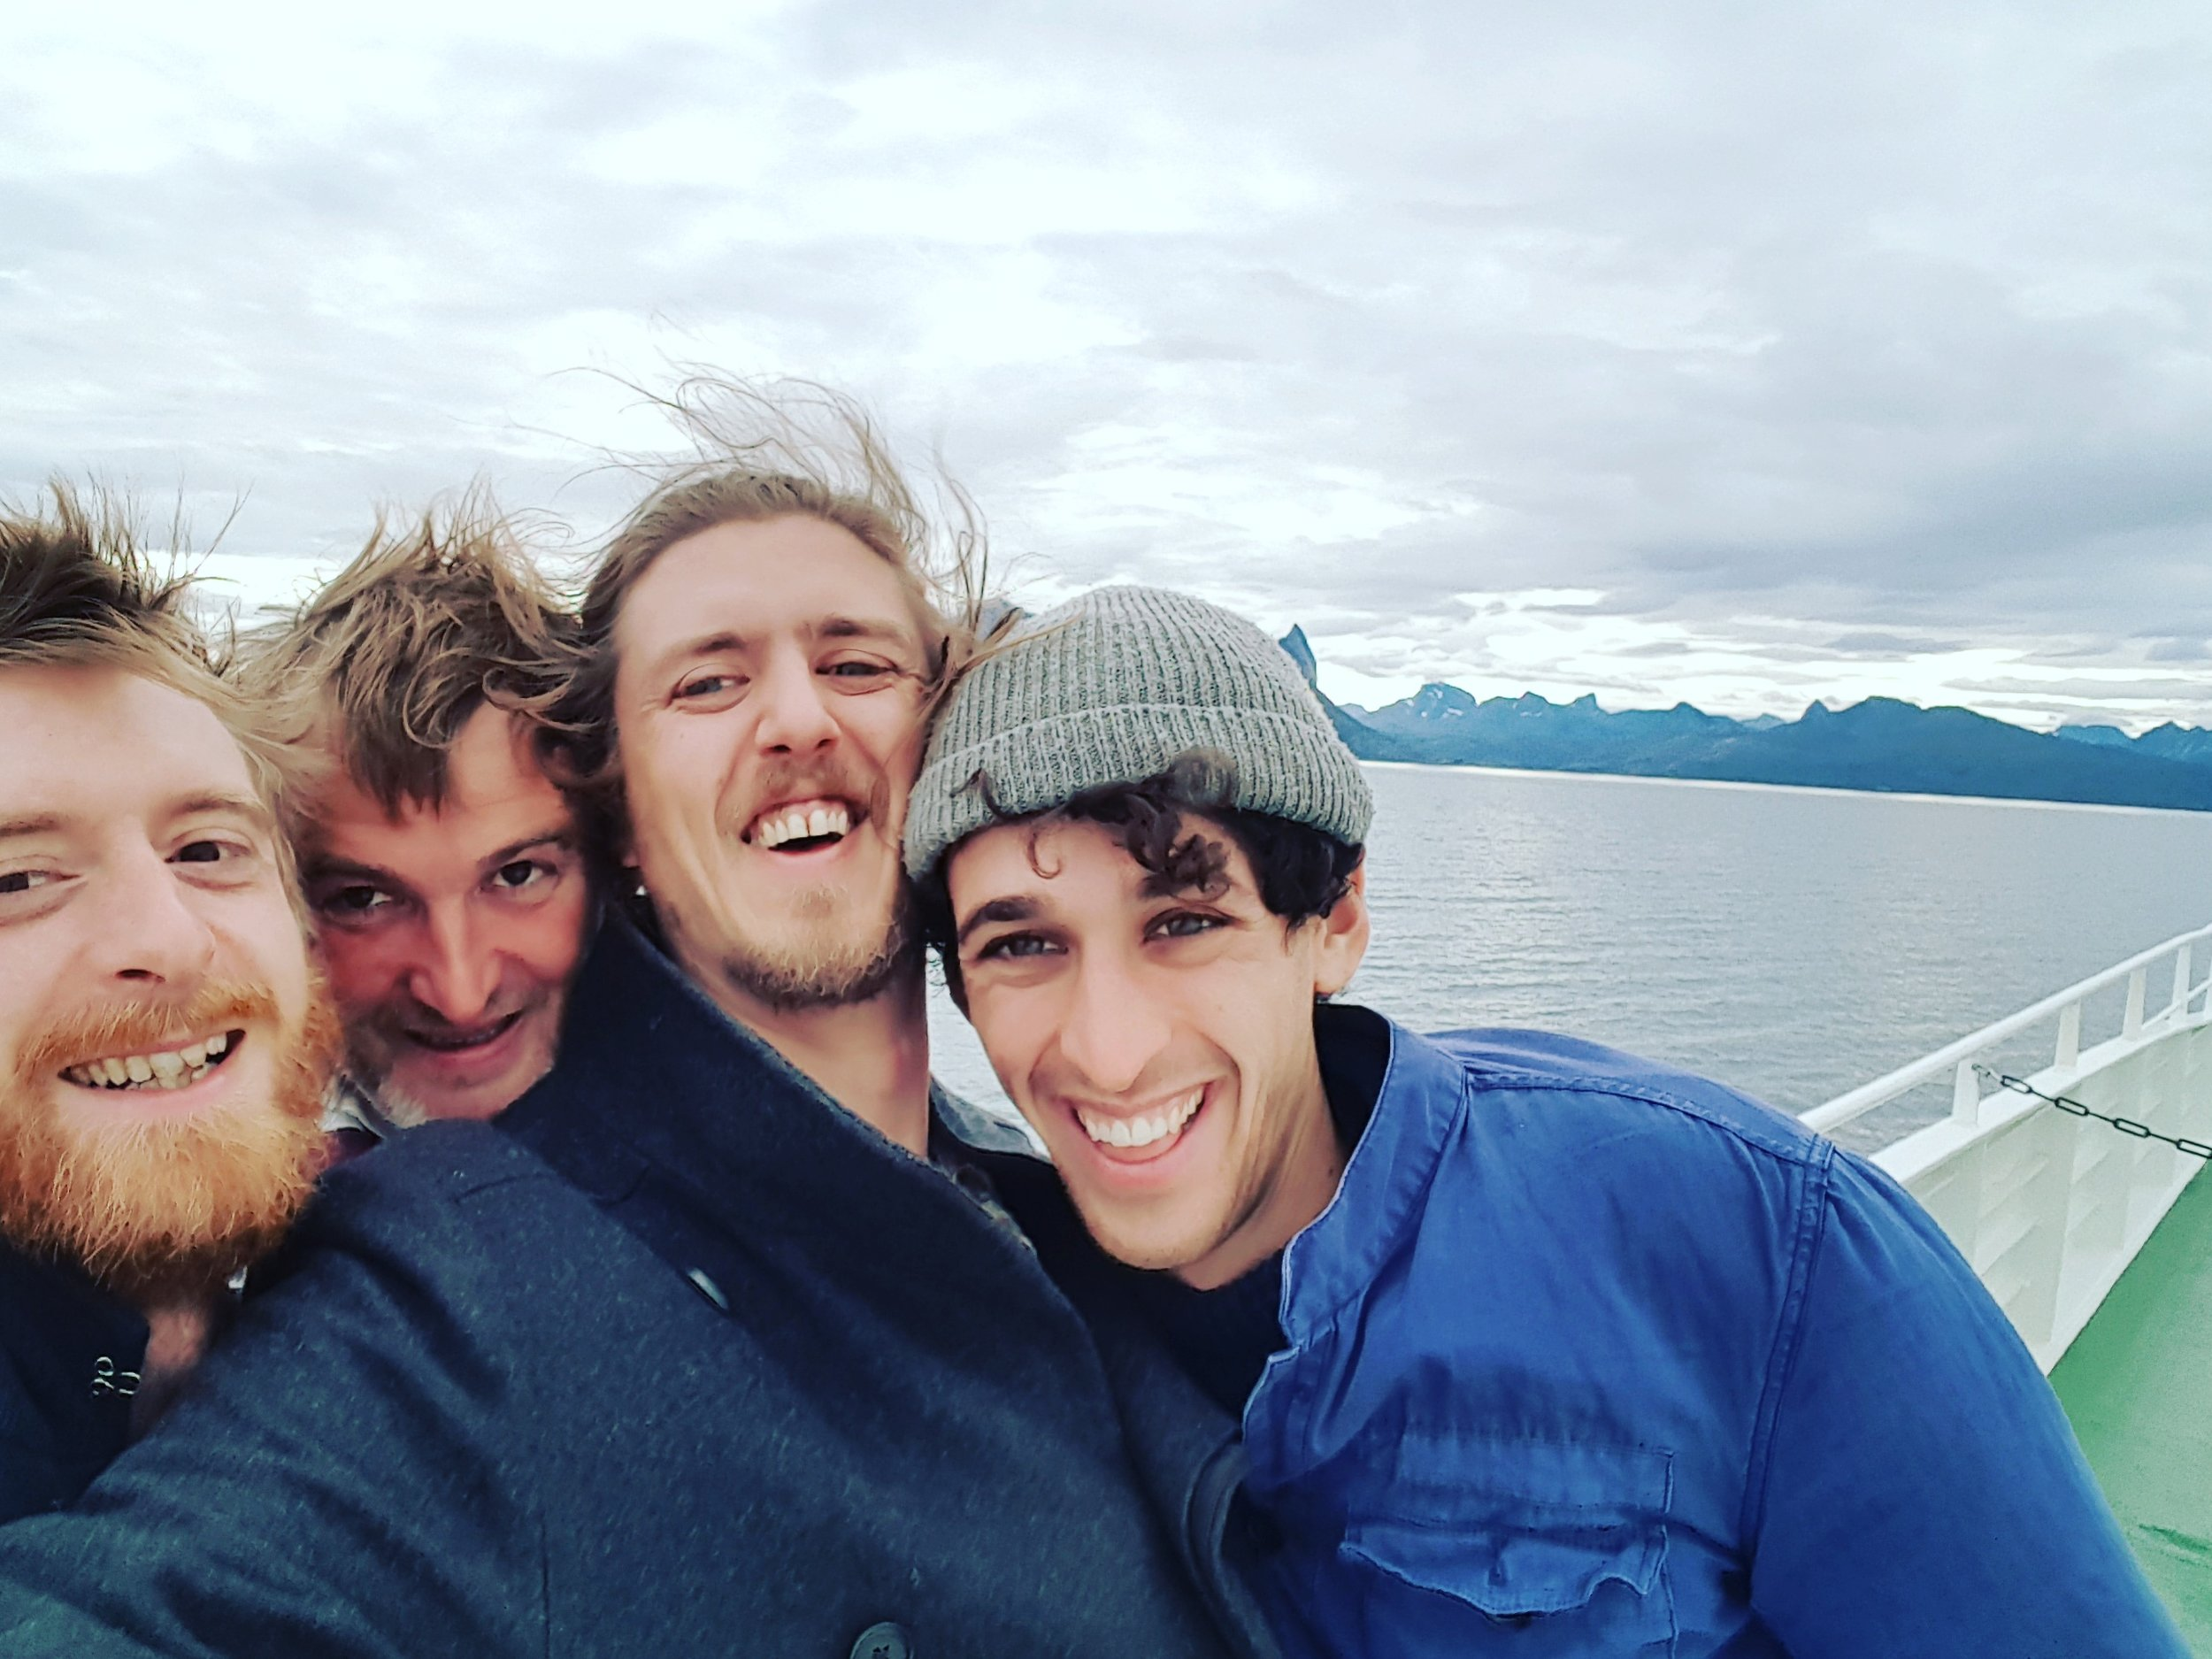 Mike, Roddie Sloan, Josh and Josh Evans On the ferry to ArktiskMat, Norway, September